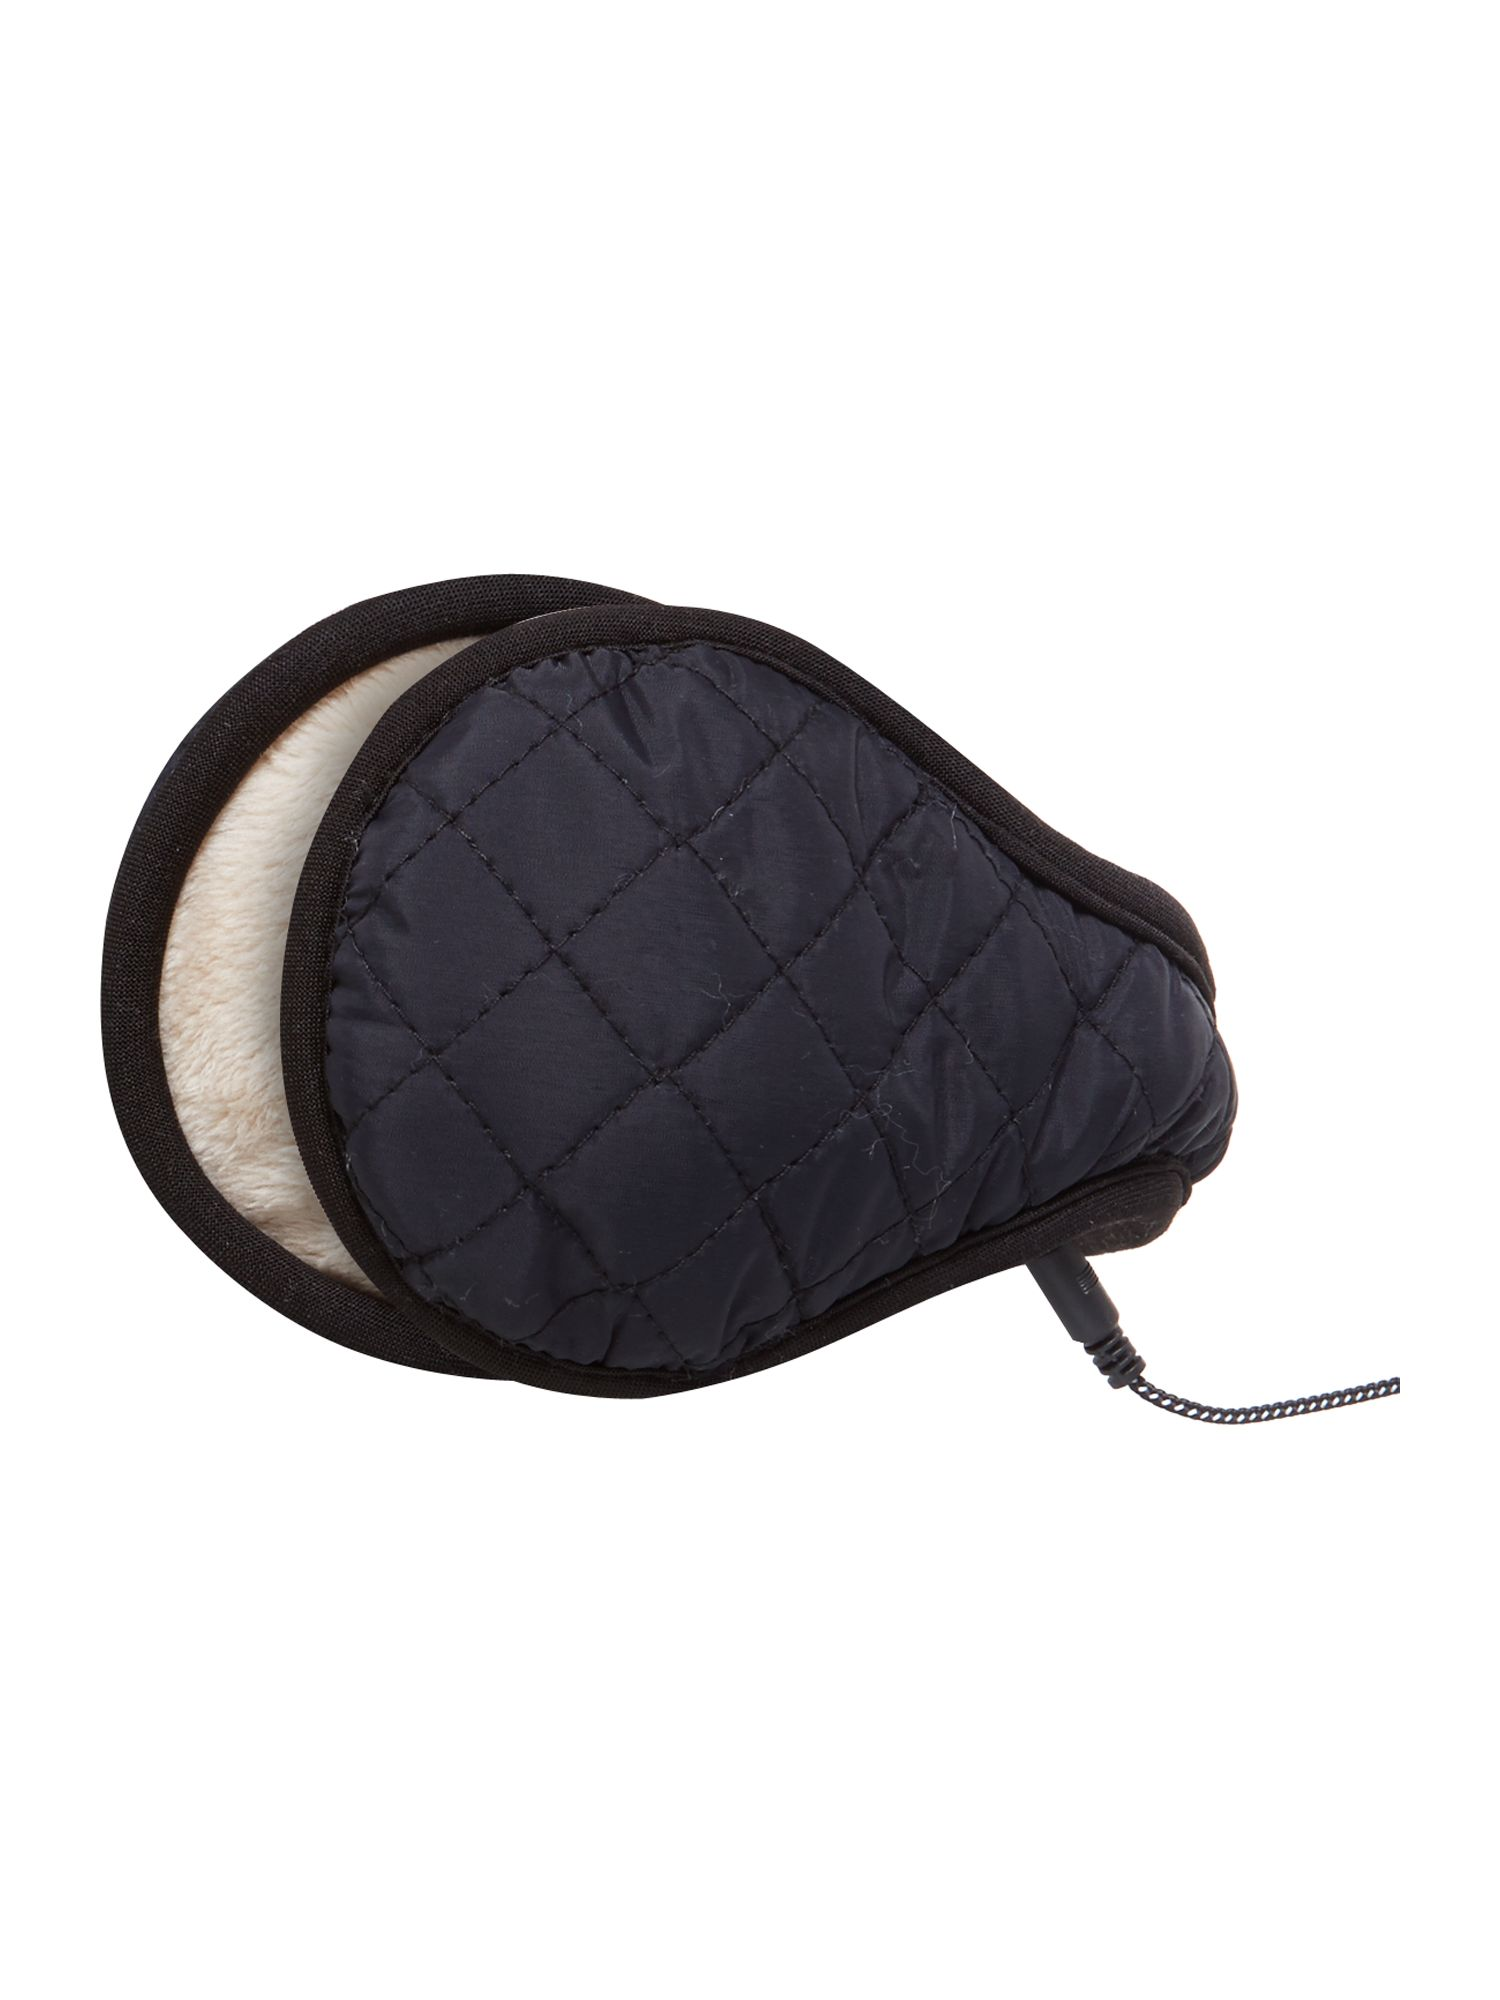 Hear muff quilted audio earmuff